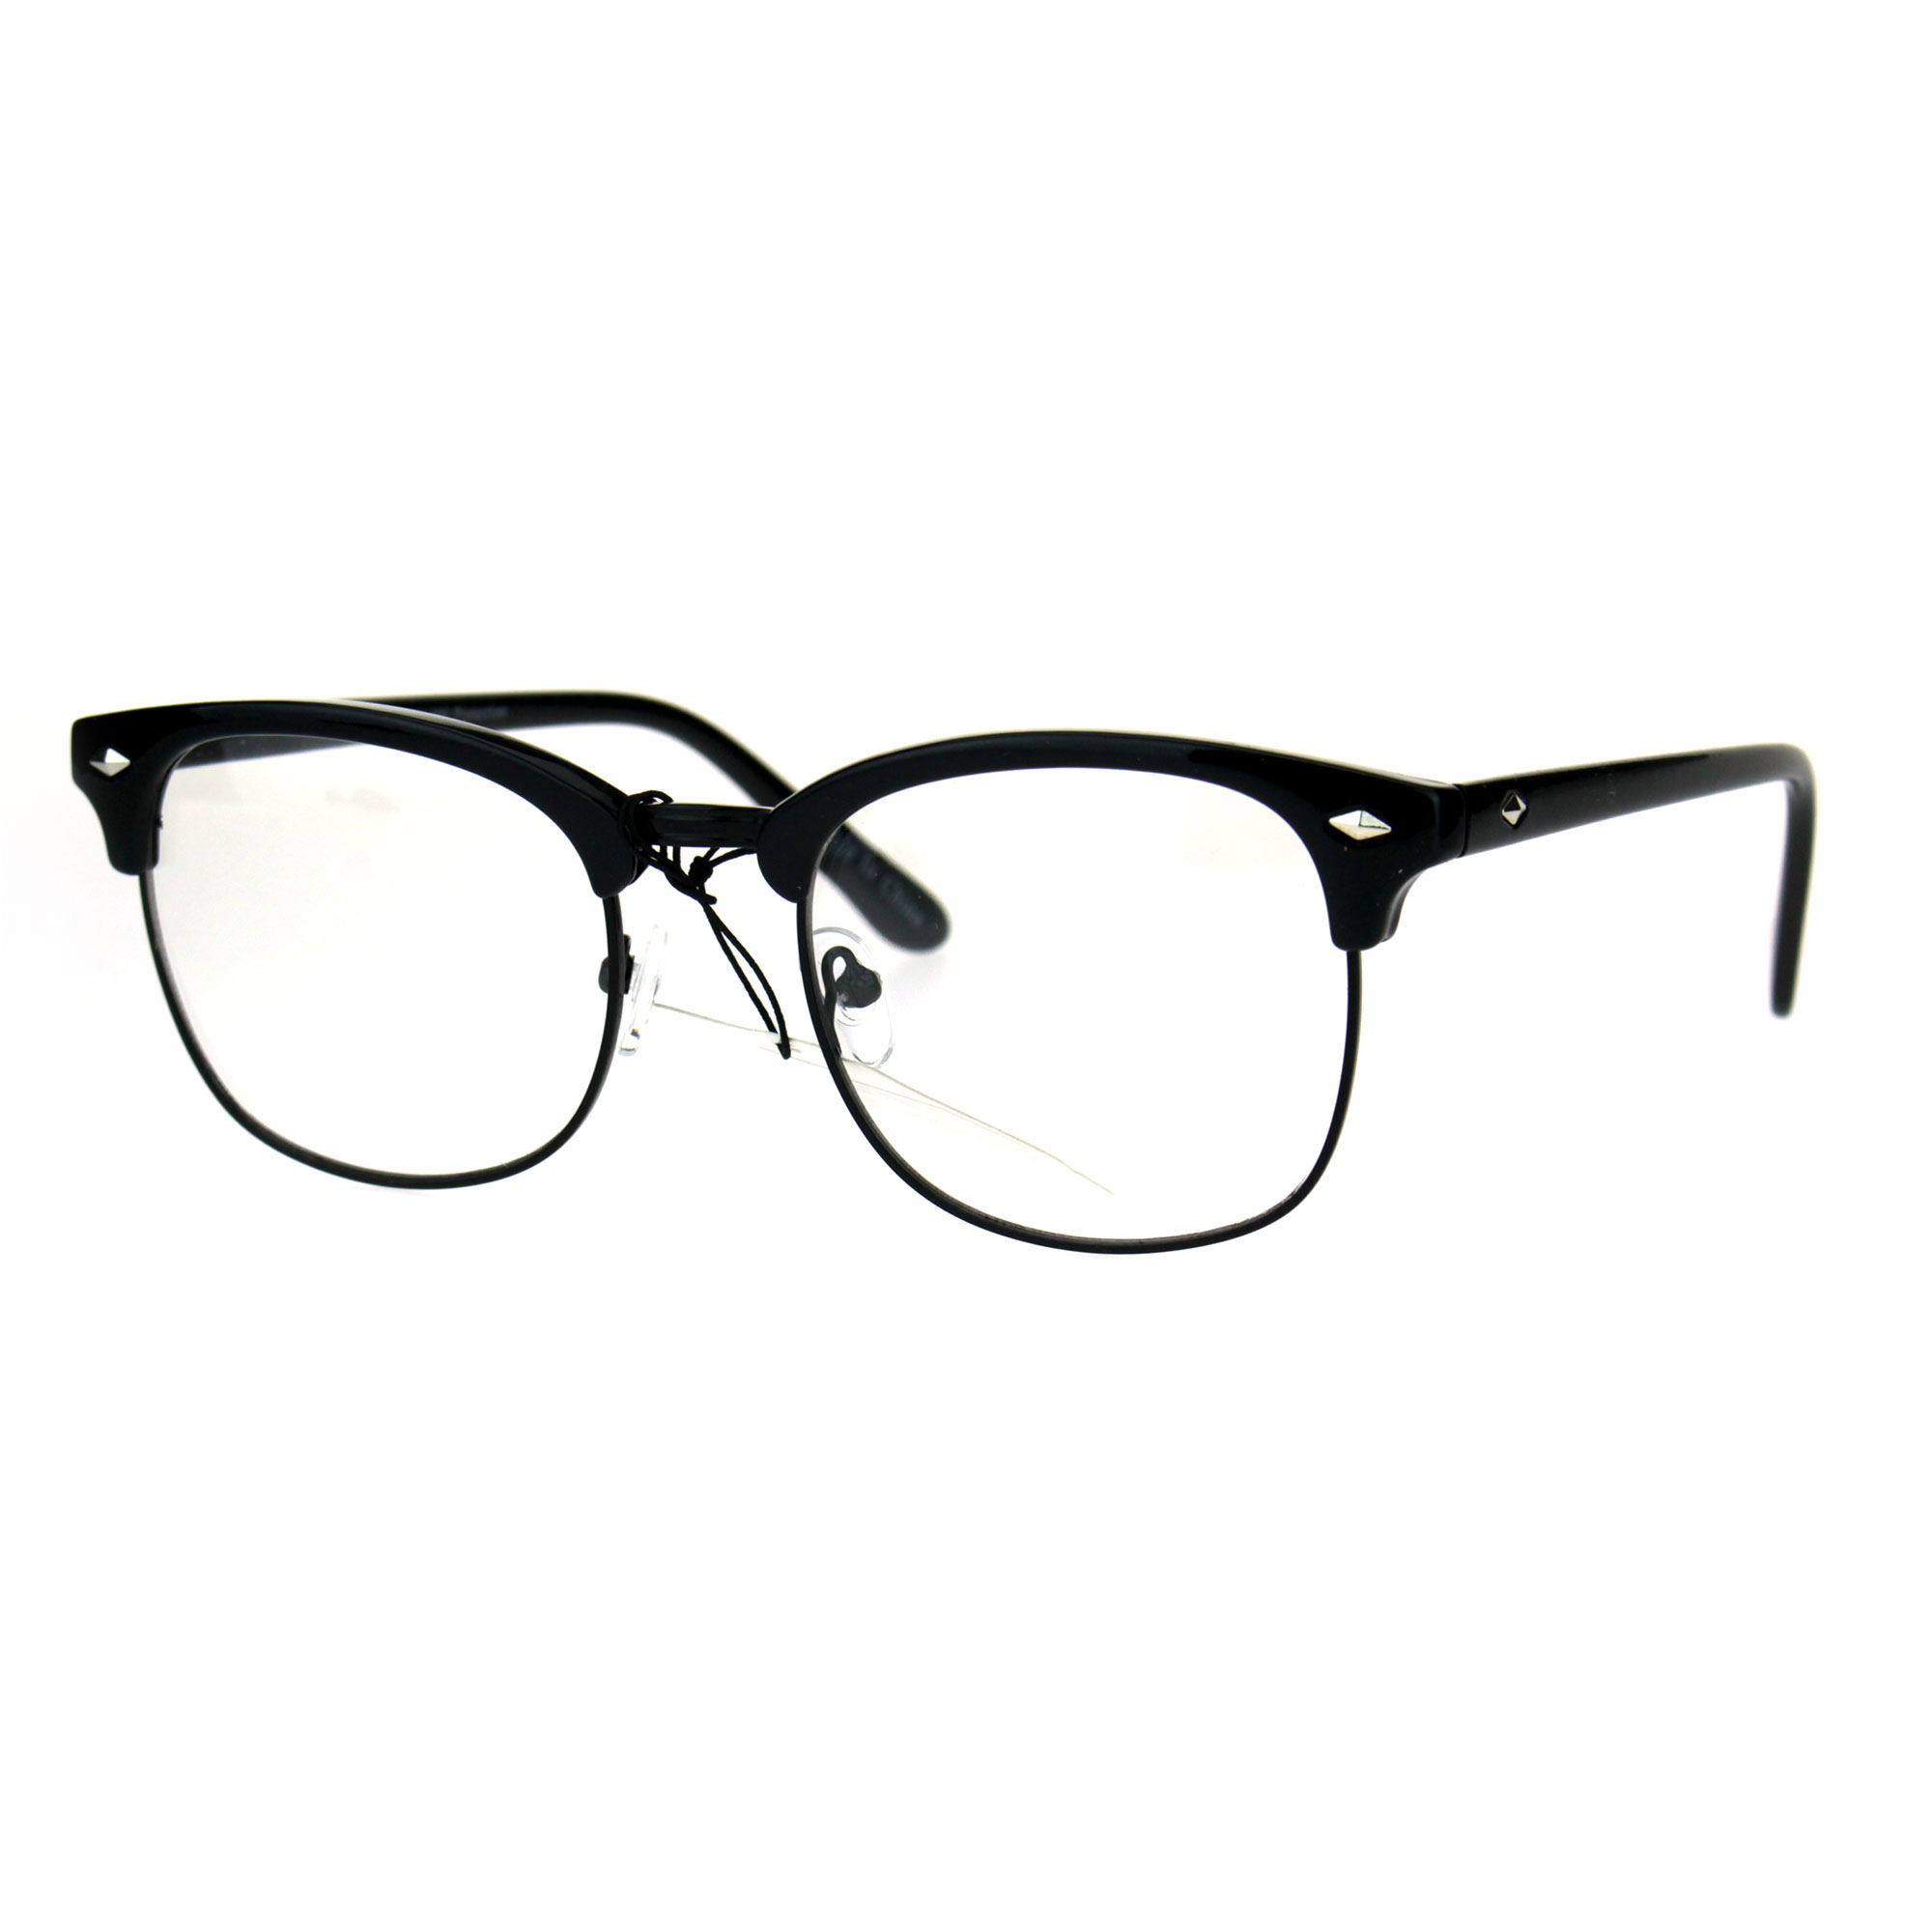 Glasses Frames For Men Hipster